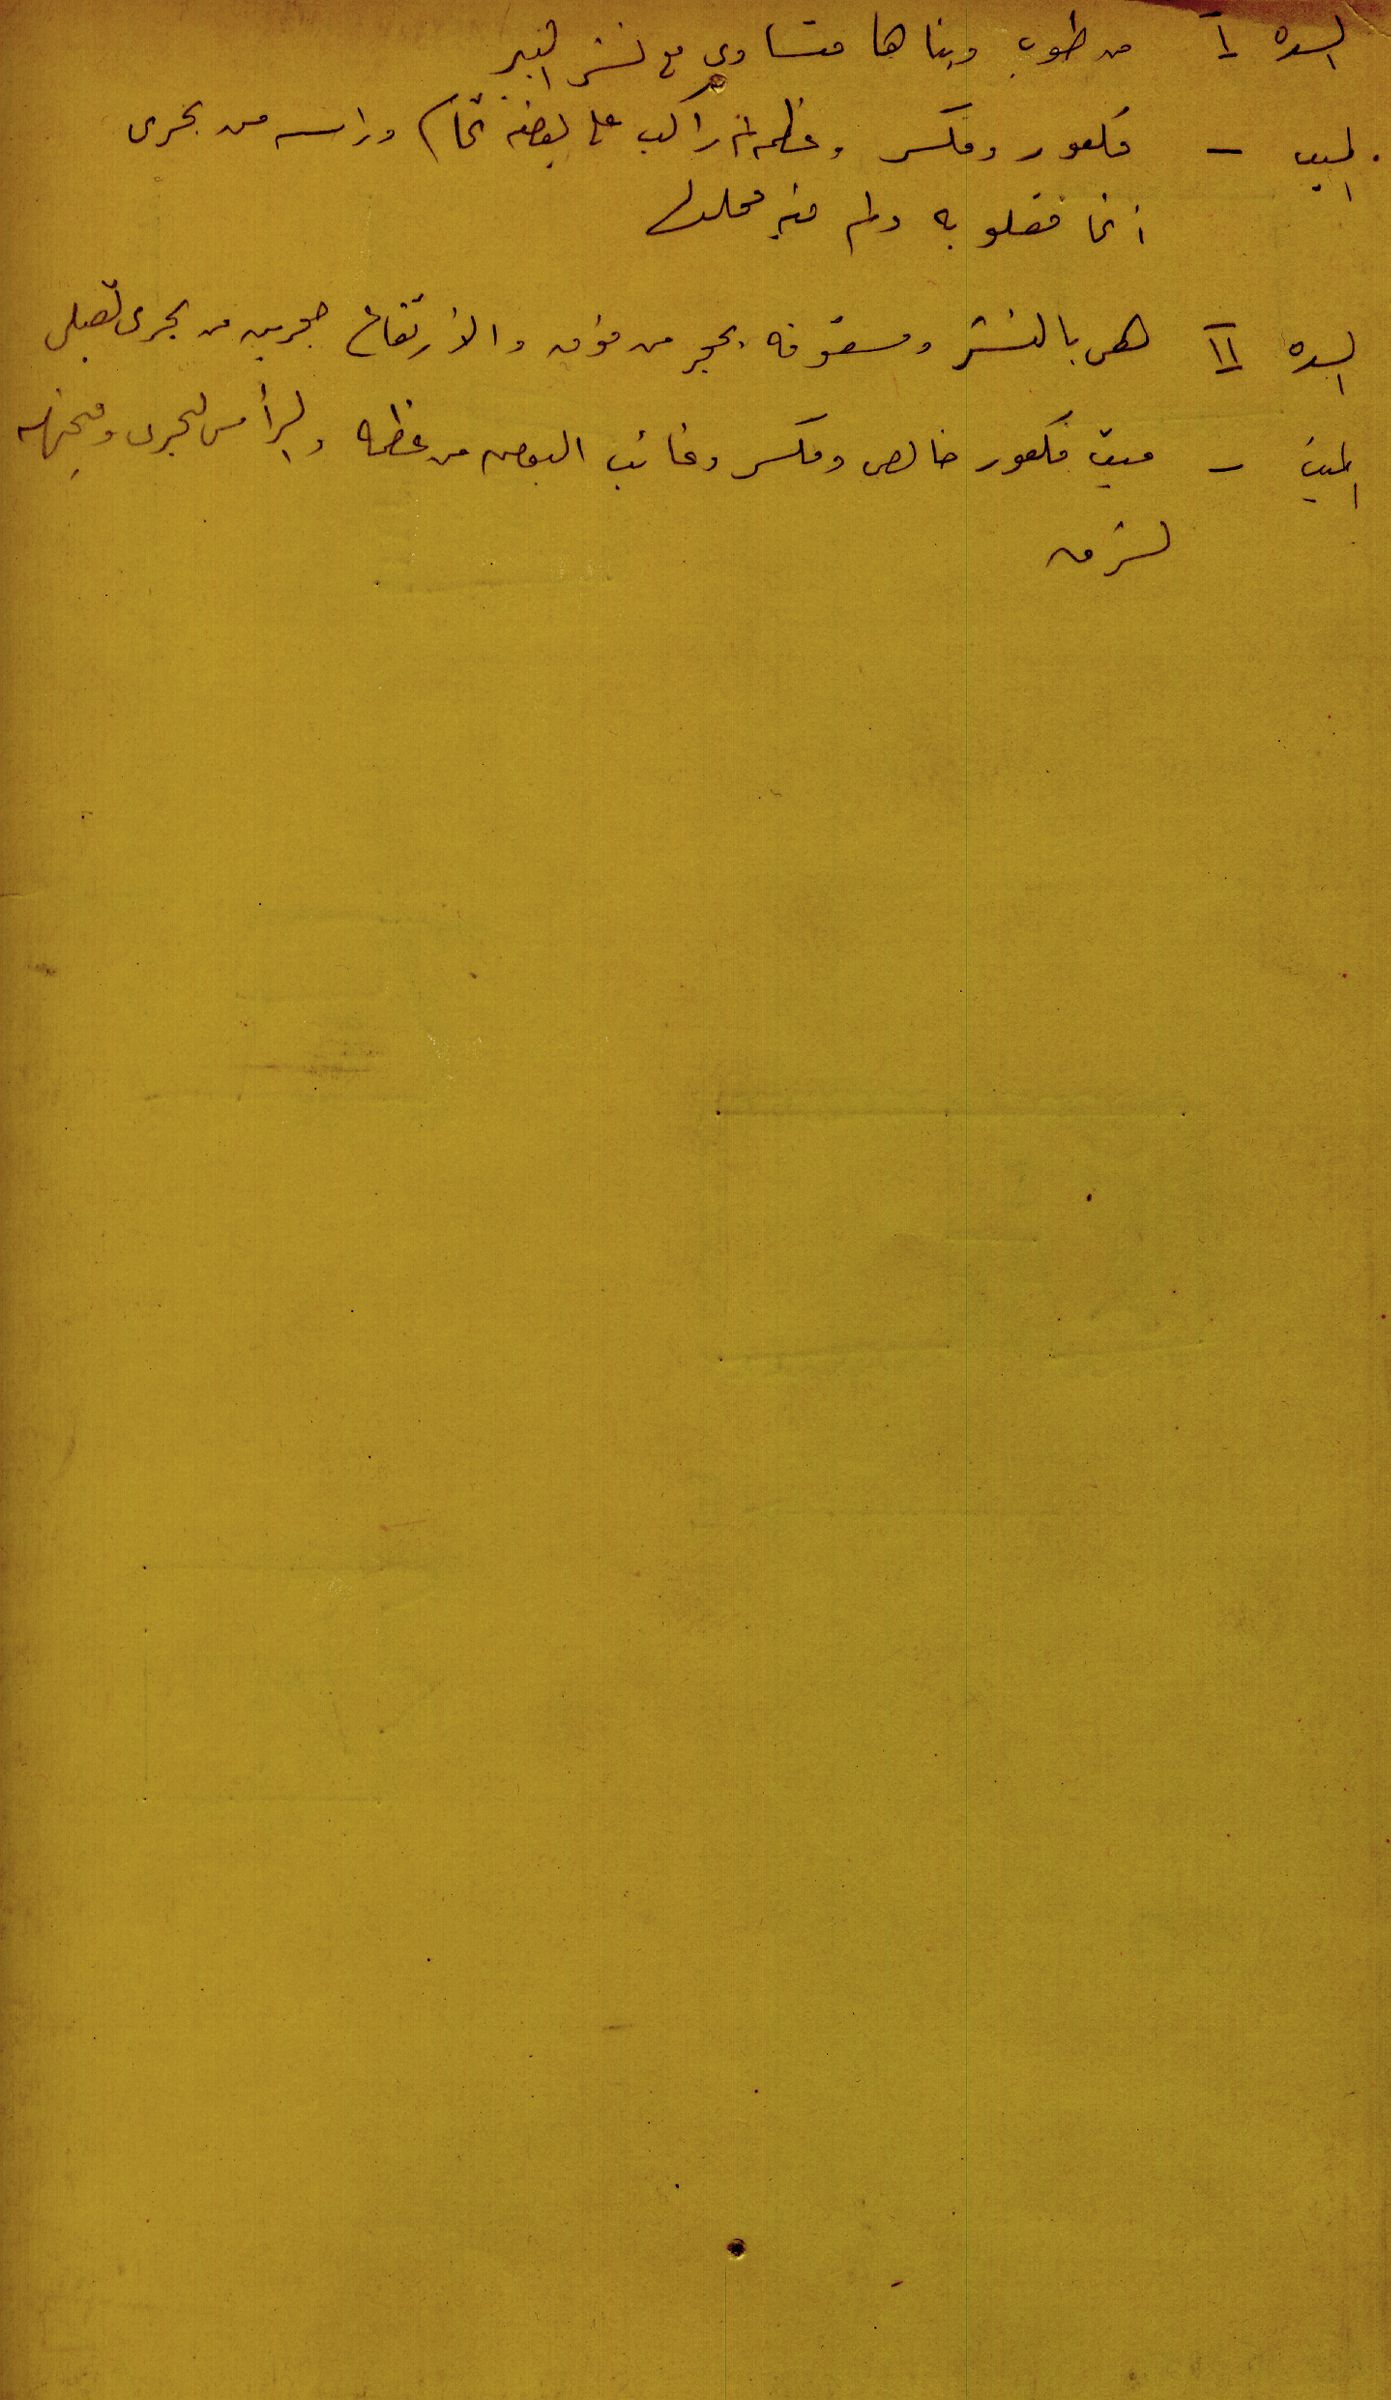 Notes: G 2418, Shaft G, notes (in Arabic)